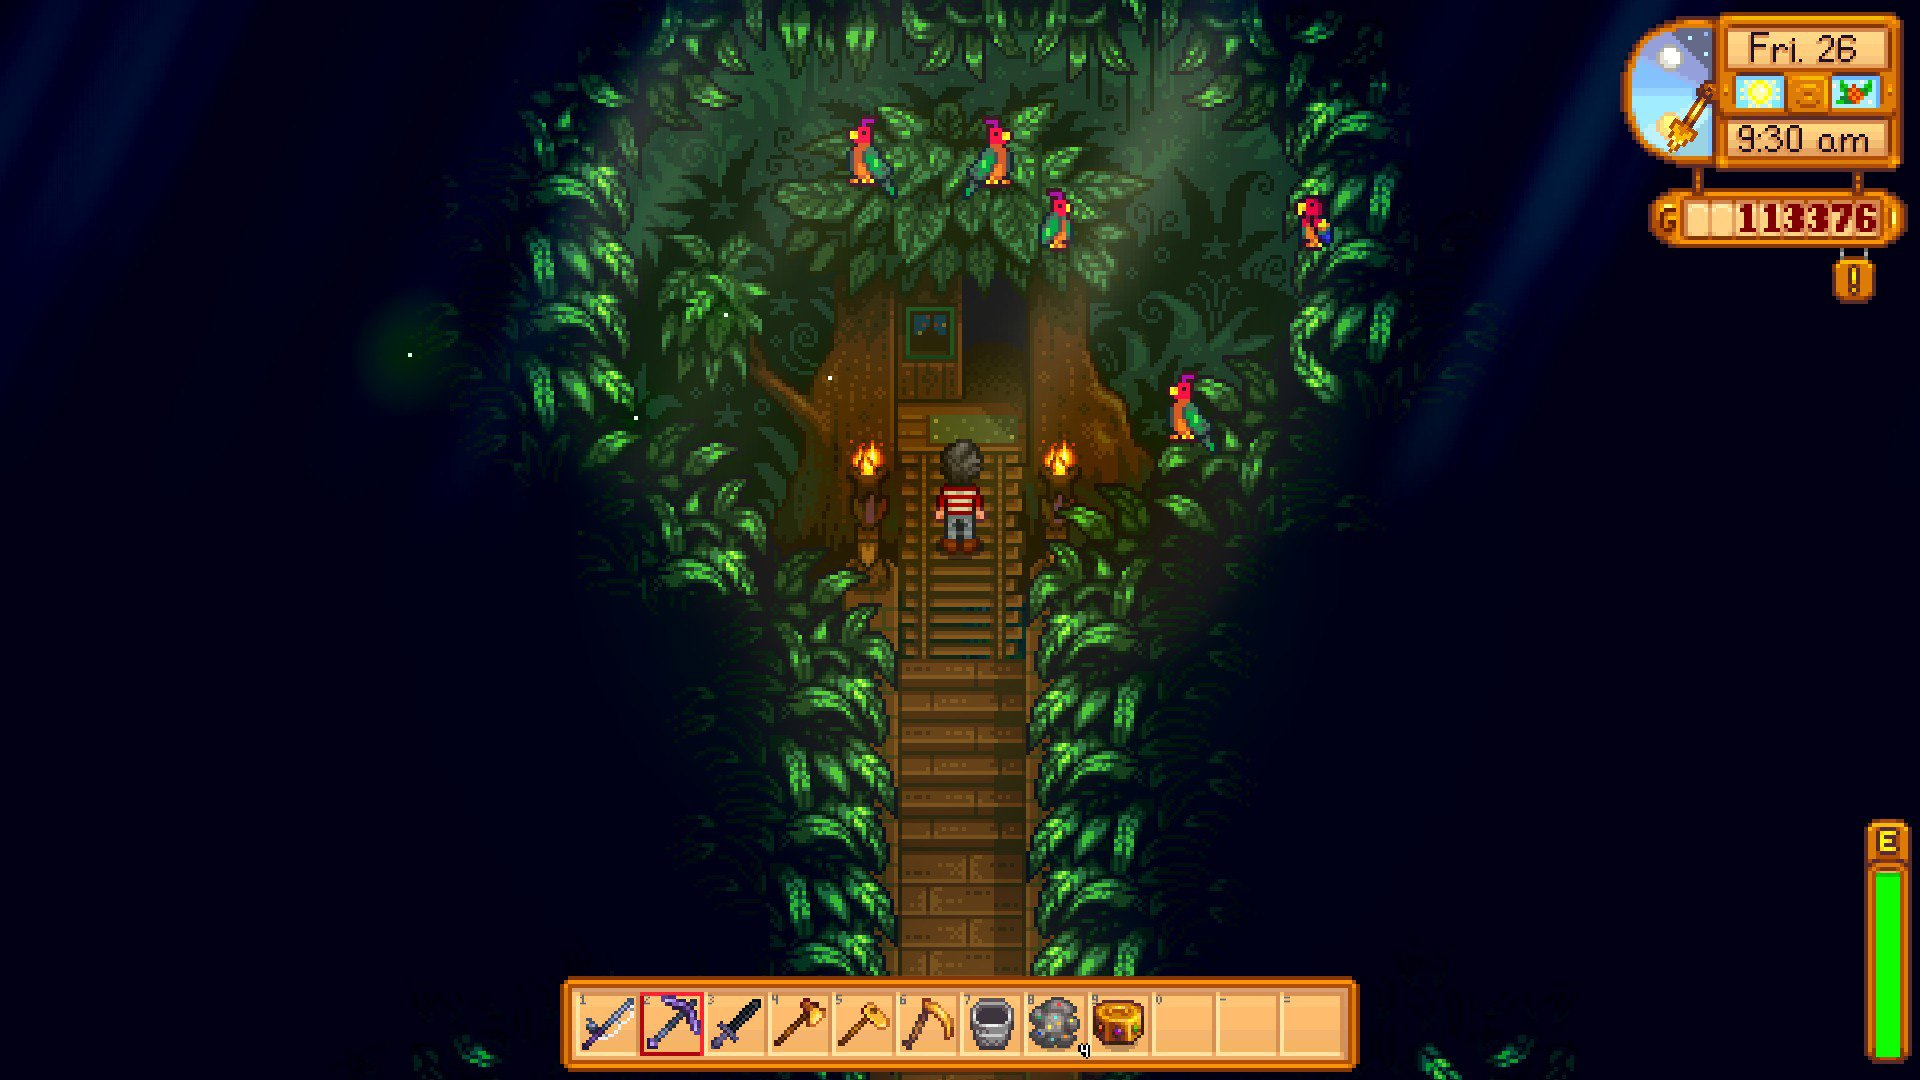 Stardew Valley 1.5 is out today on Switch, PS4, and Xbox One screenshot